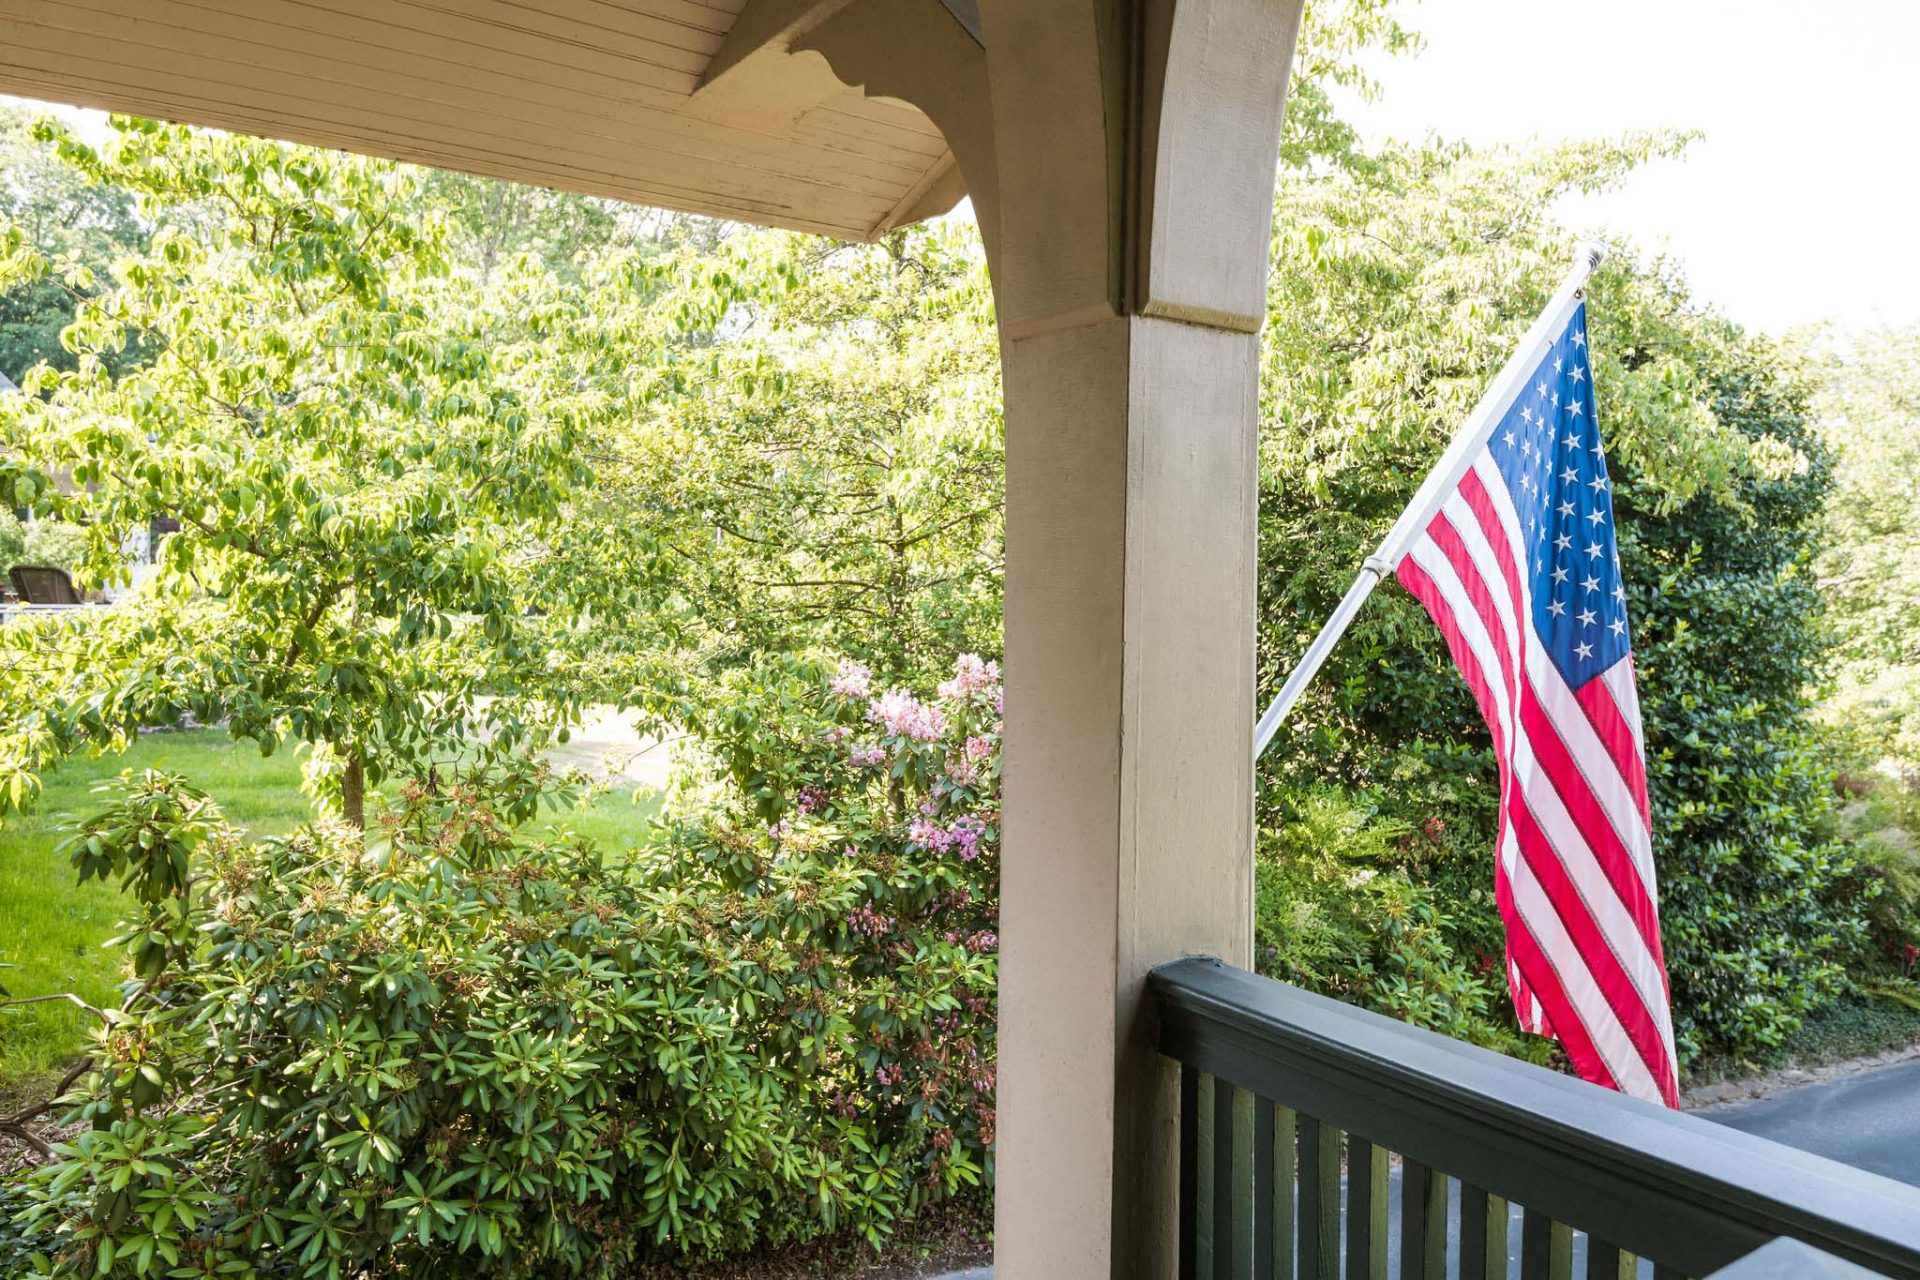 An American flag hanging at the end of the porch, with green bushes and trees in the background.